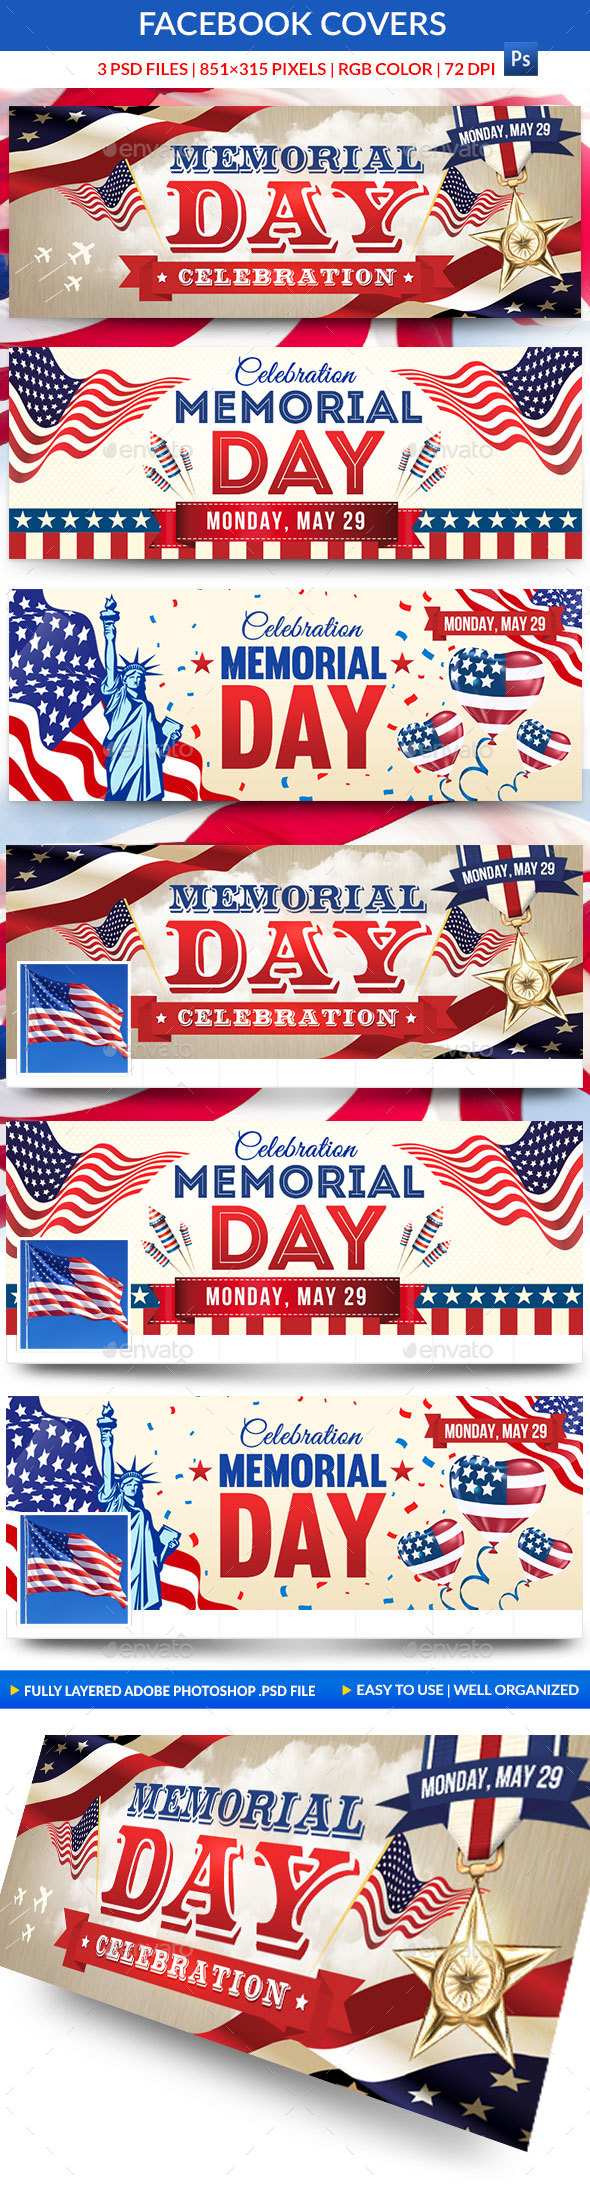 Memorial Day Facebook Covers - Facebook Timeline Covers Social Media